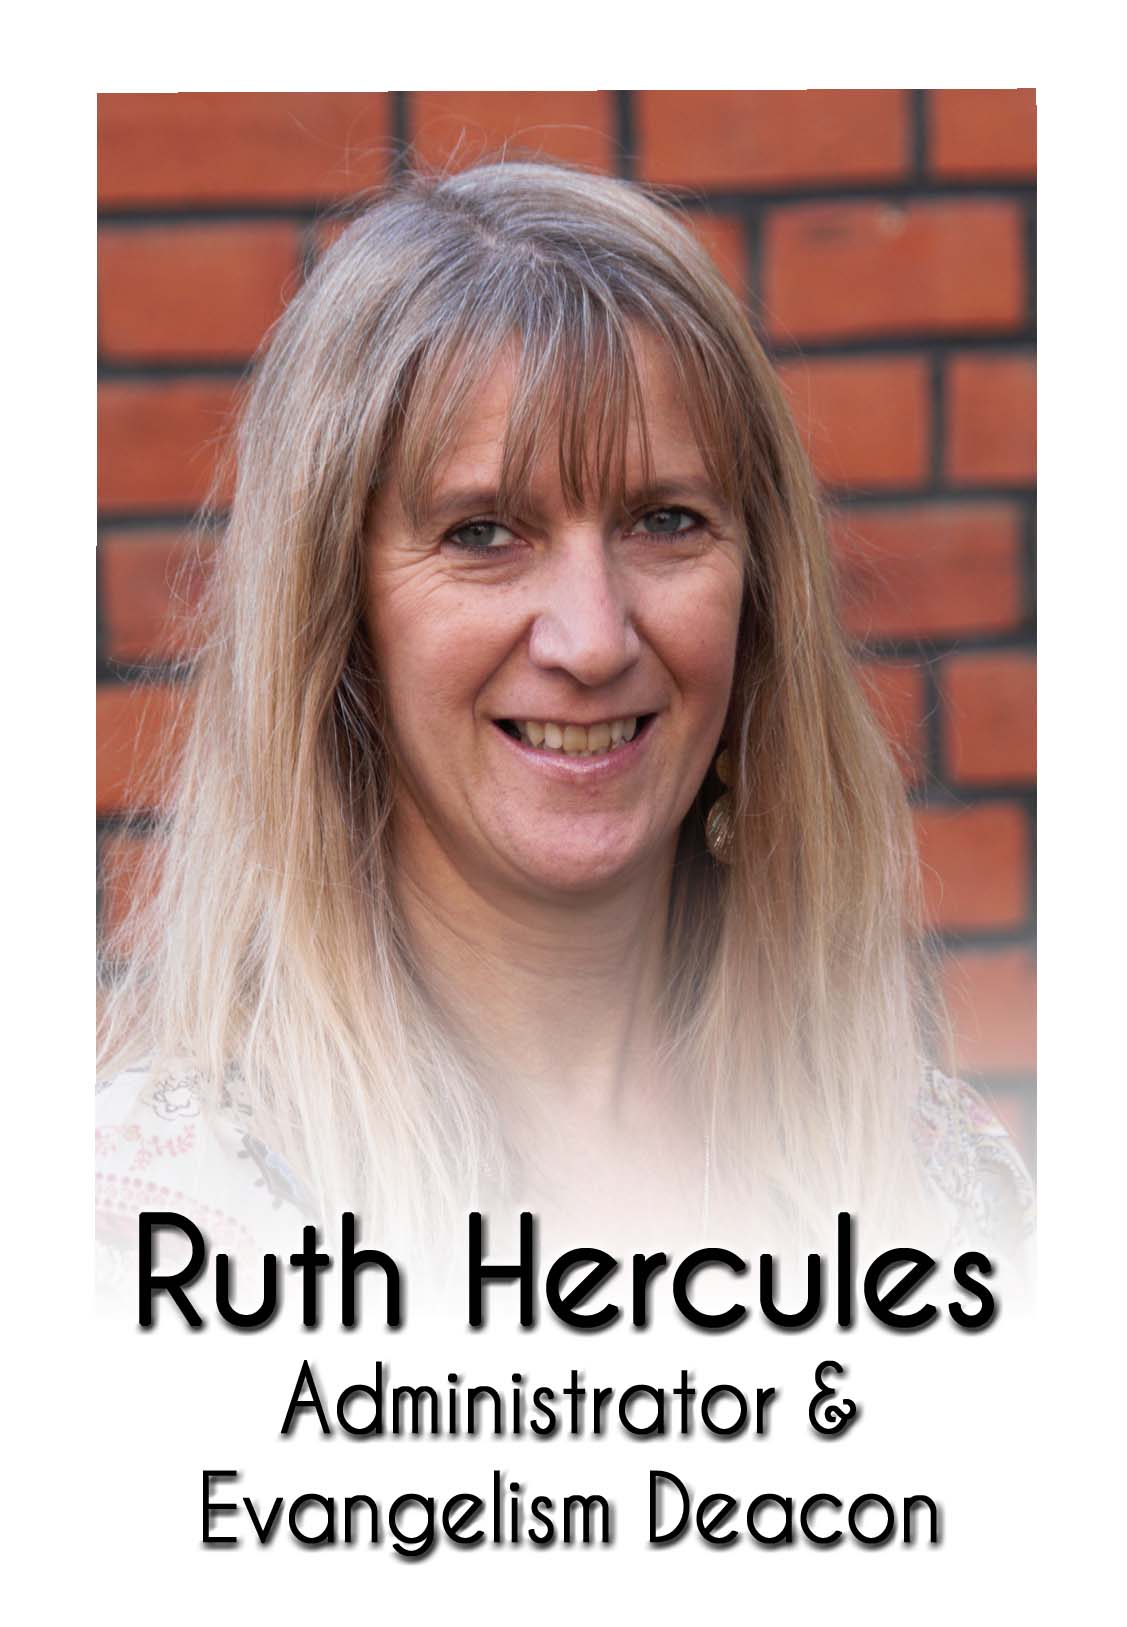 Ruth Hercules labelled